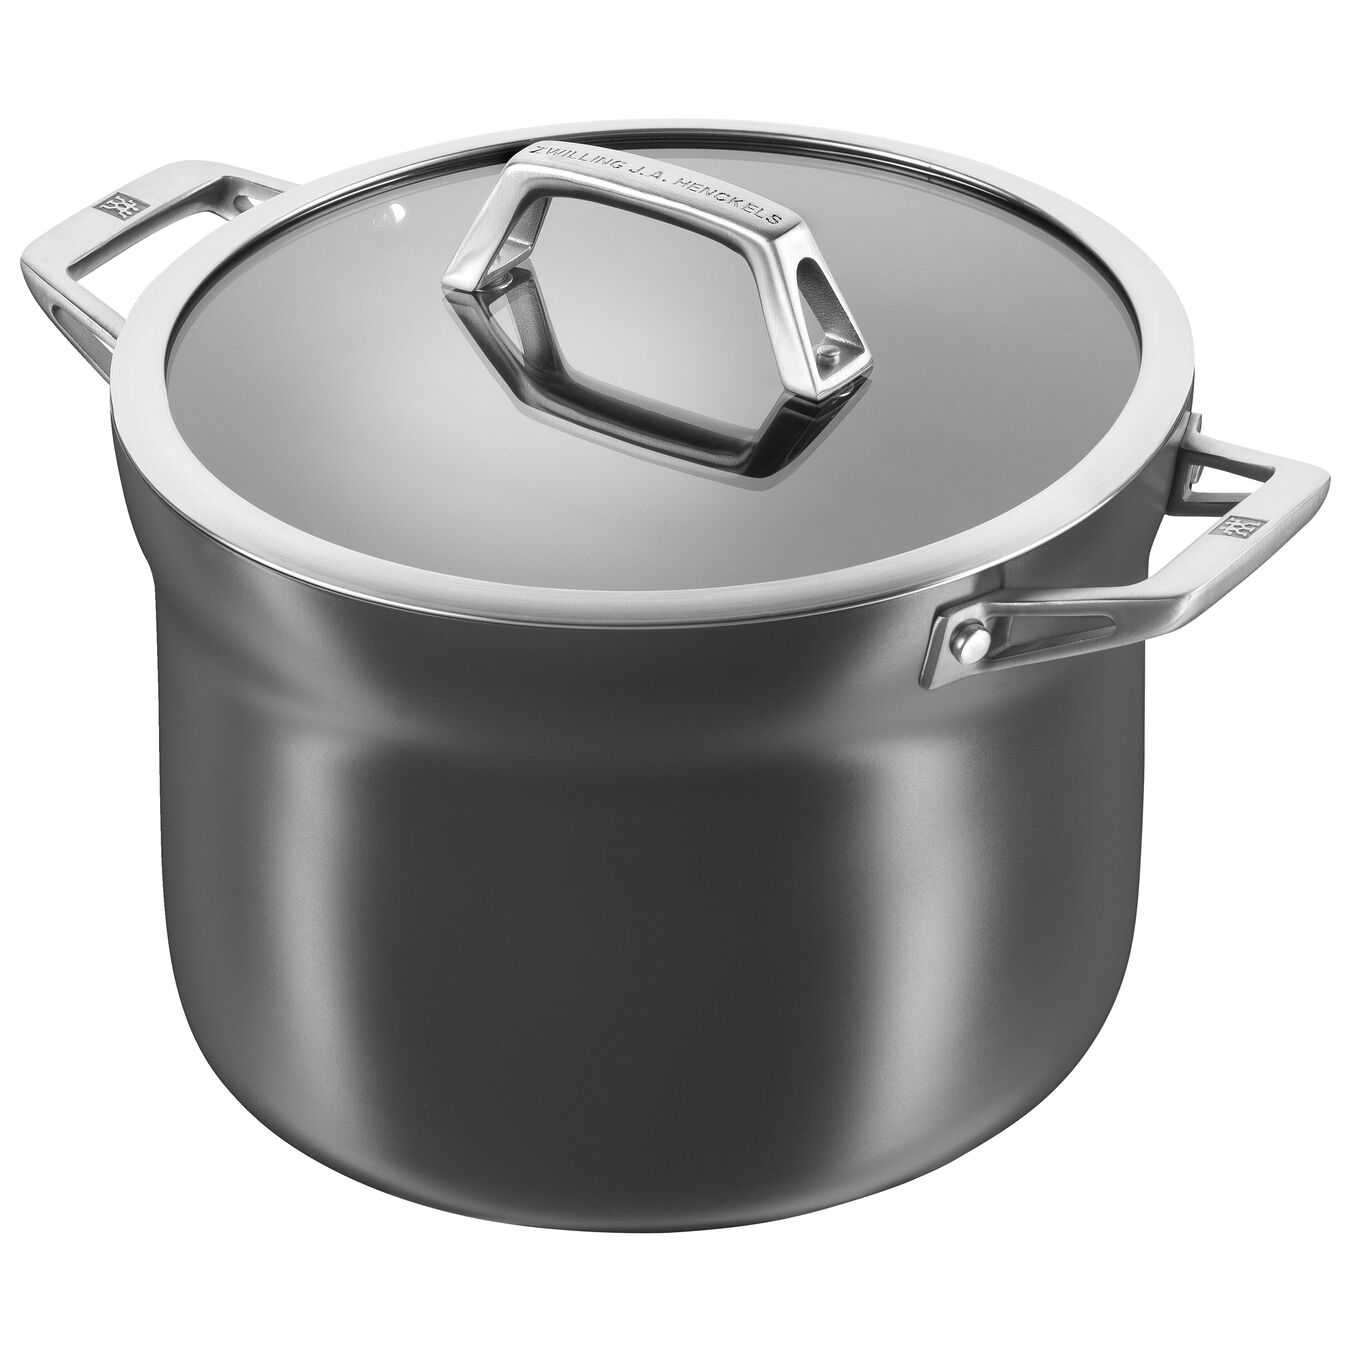 4-qt Aluminum Nonstick Soup Pot,,large 1